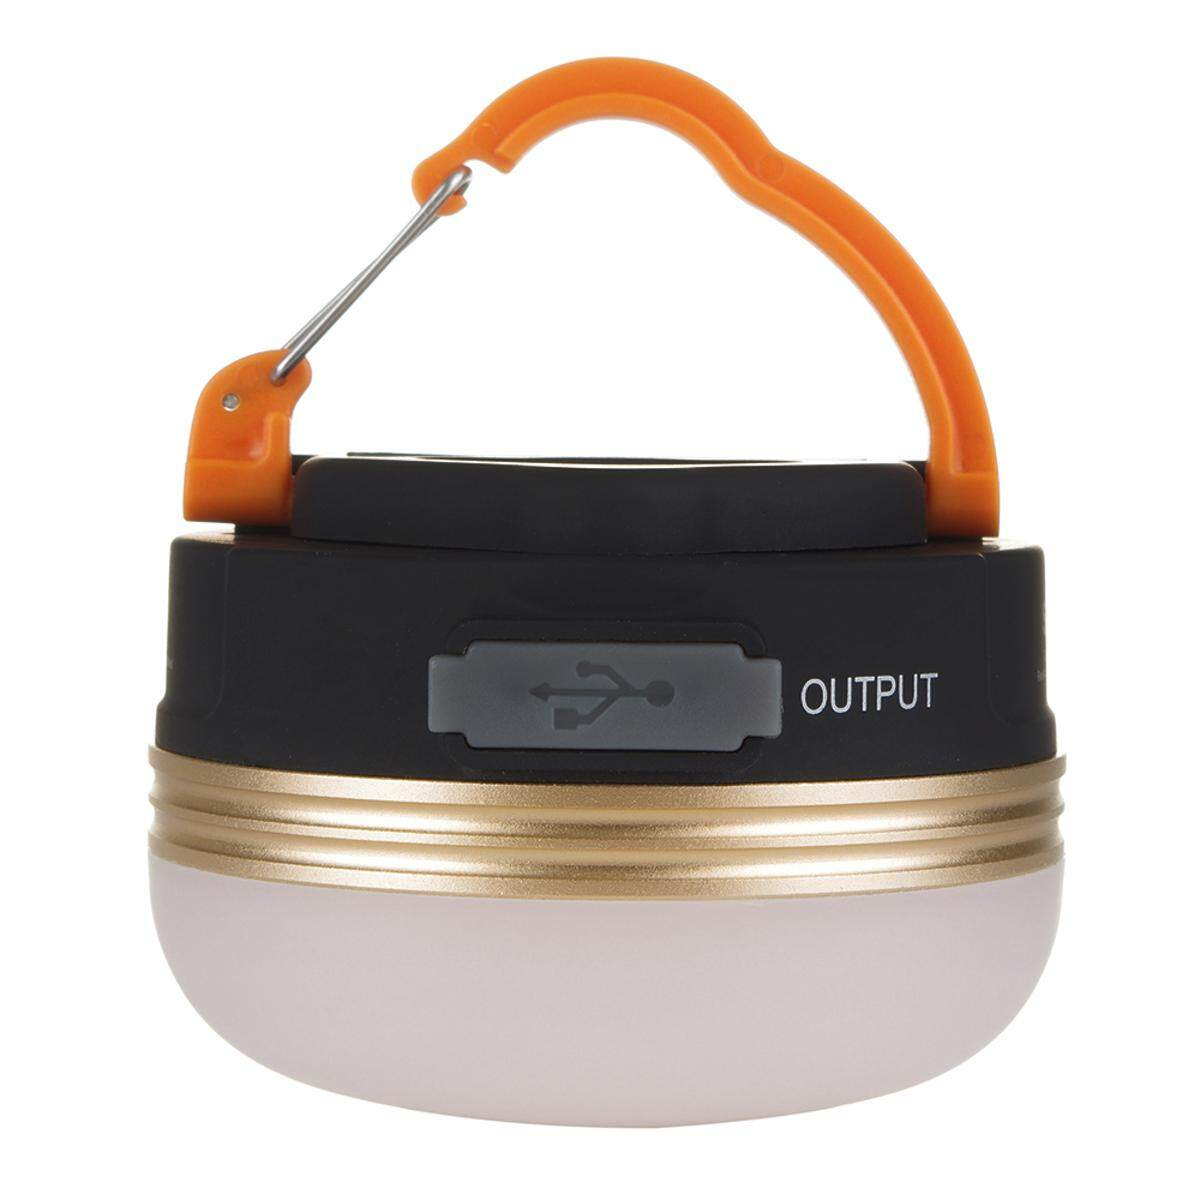 Portable Rechargeable Led Hiking Camping Tent Lantern Light Usb Lamp Outdoor By Glimmer.